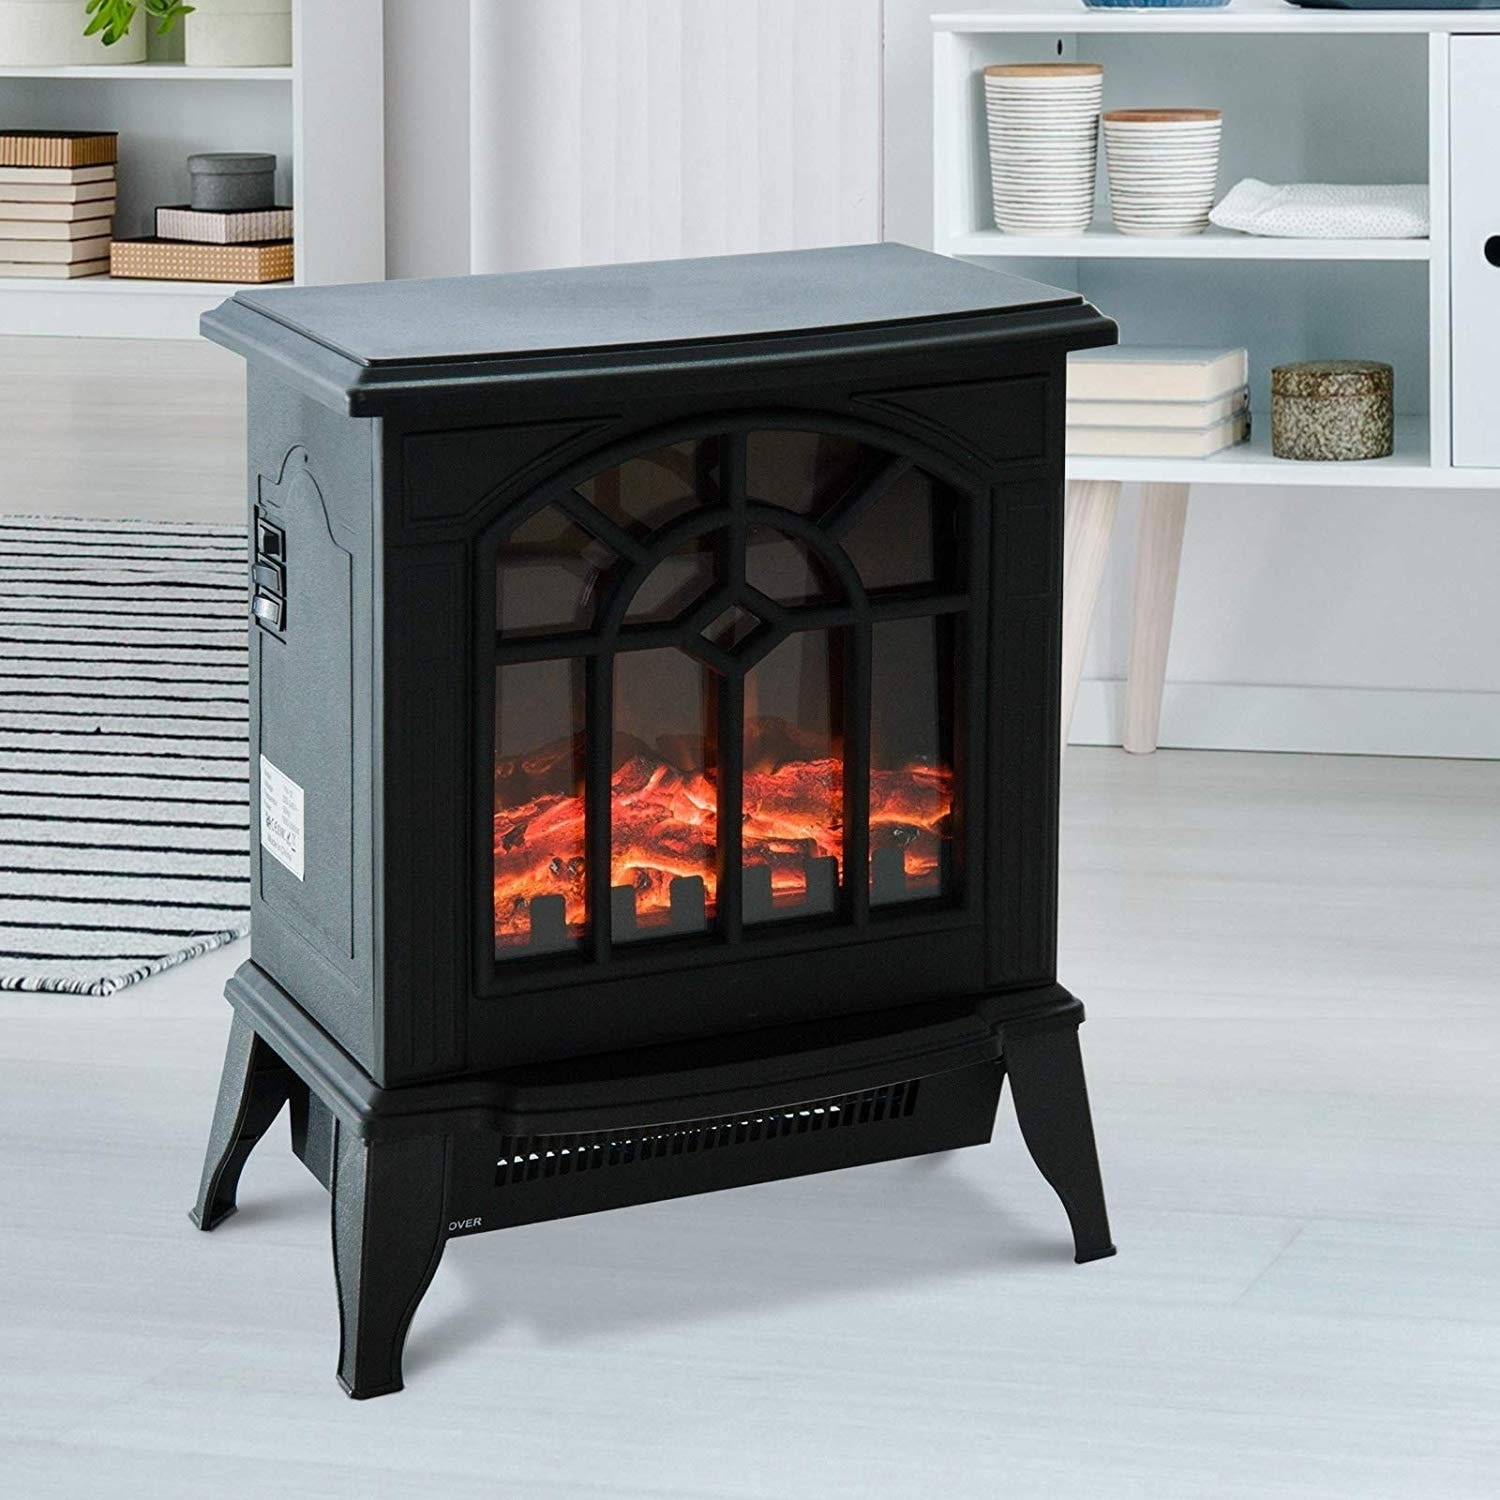 Miraculous Homcom 1500W Freestanding Indoor Electric Fireplace Heater Download Free Architecture Designs Scobabritishbridgeorg